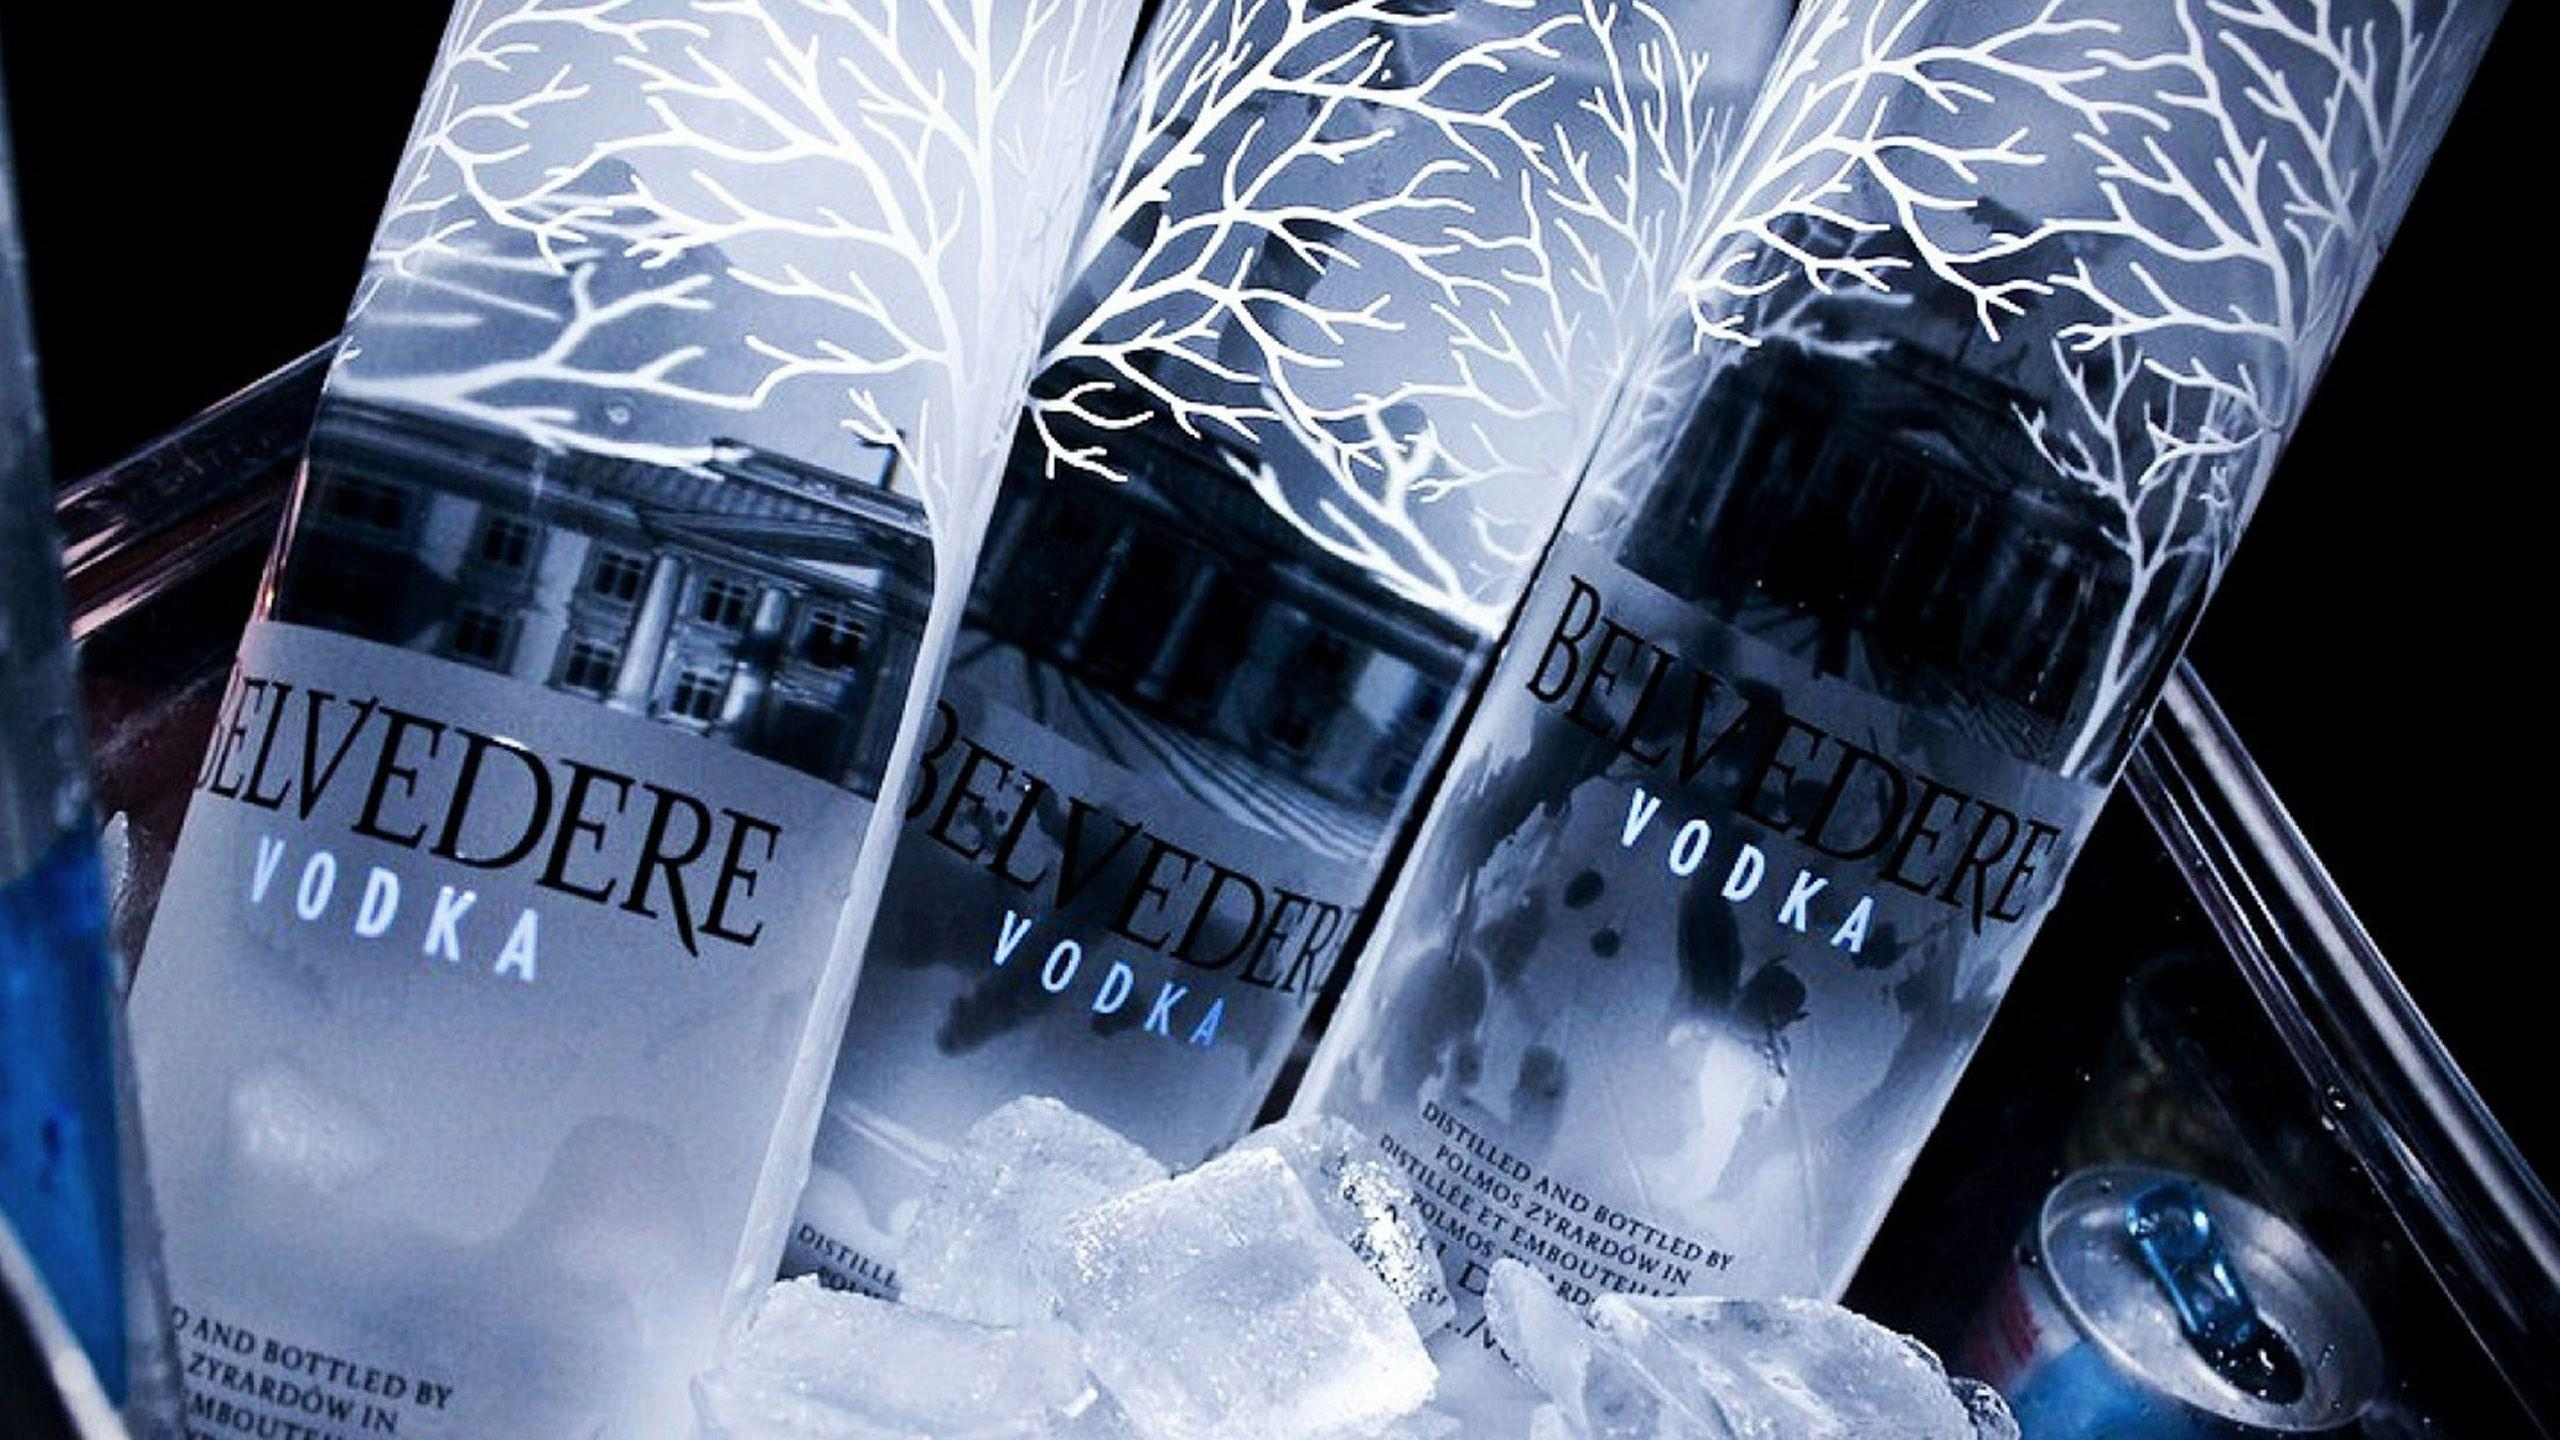 Unduh 600 Wallpaper Apple Vodka HD Paling Keren